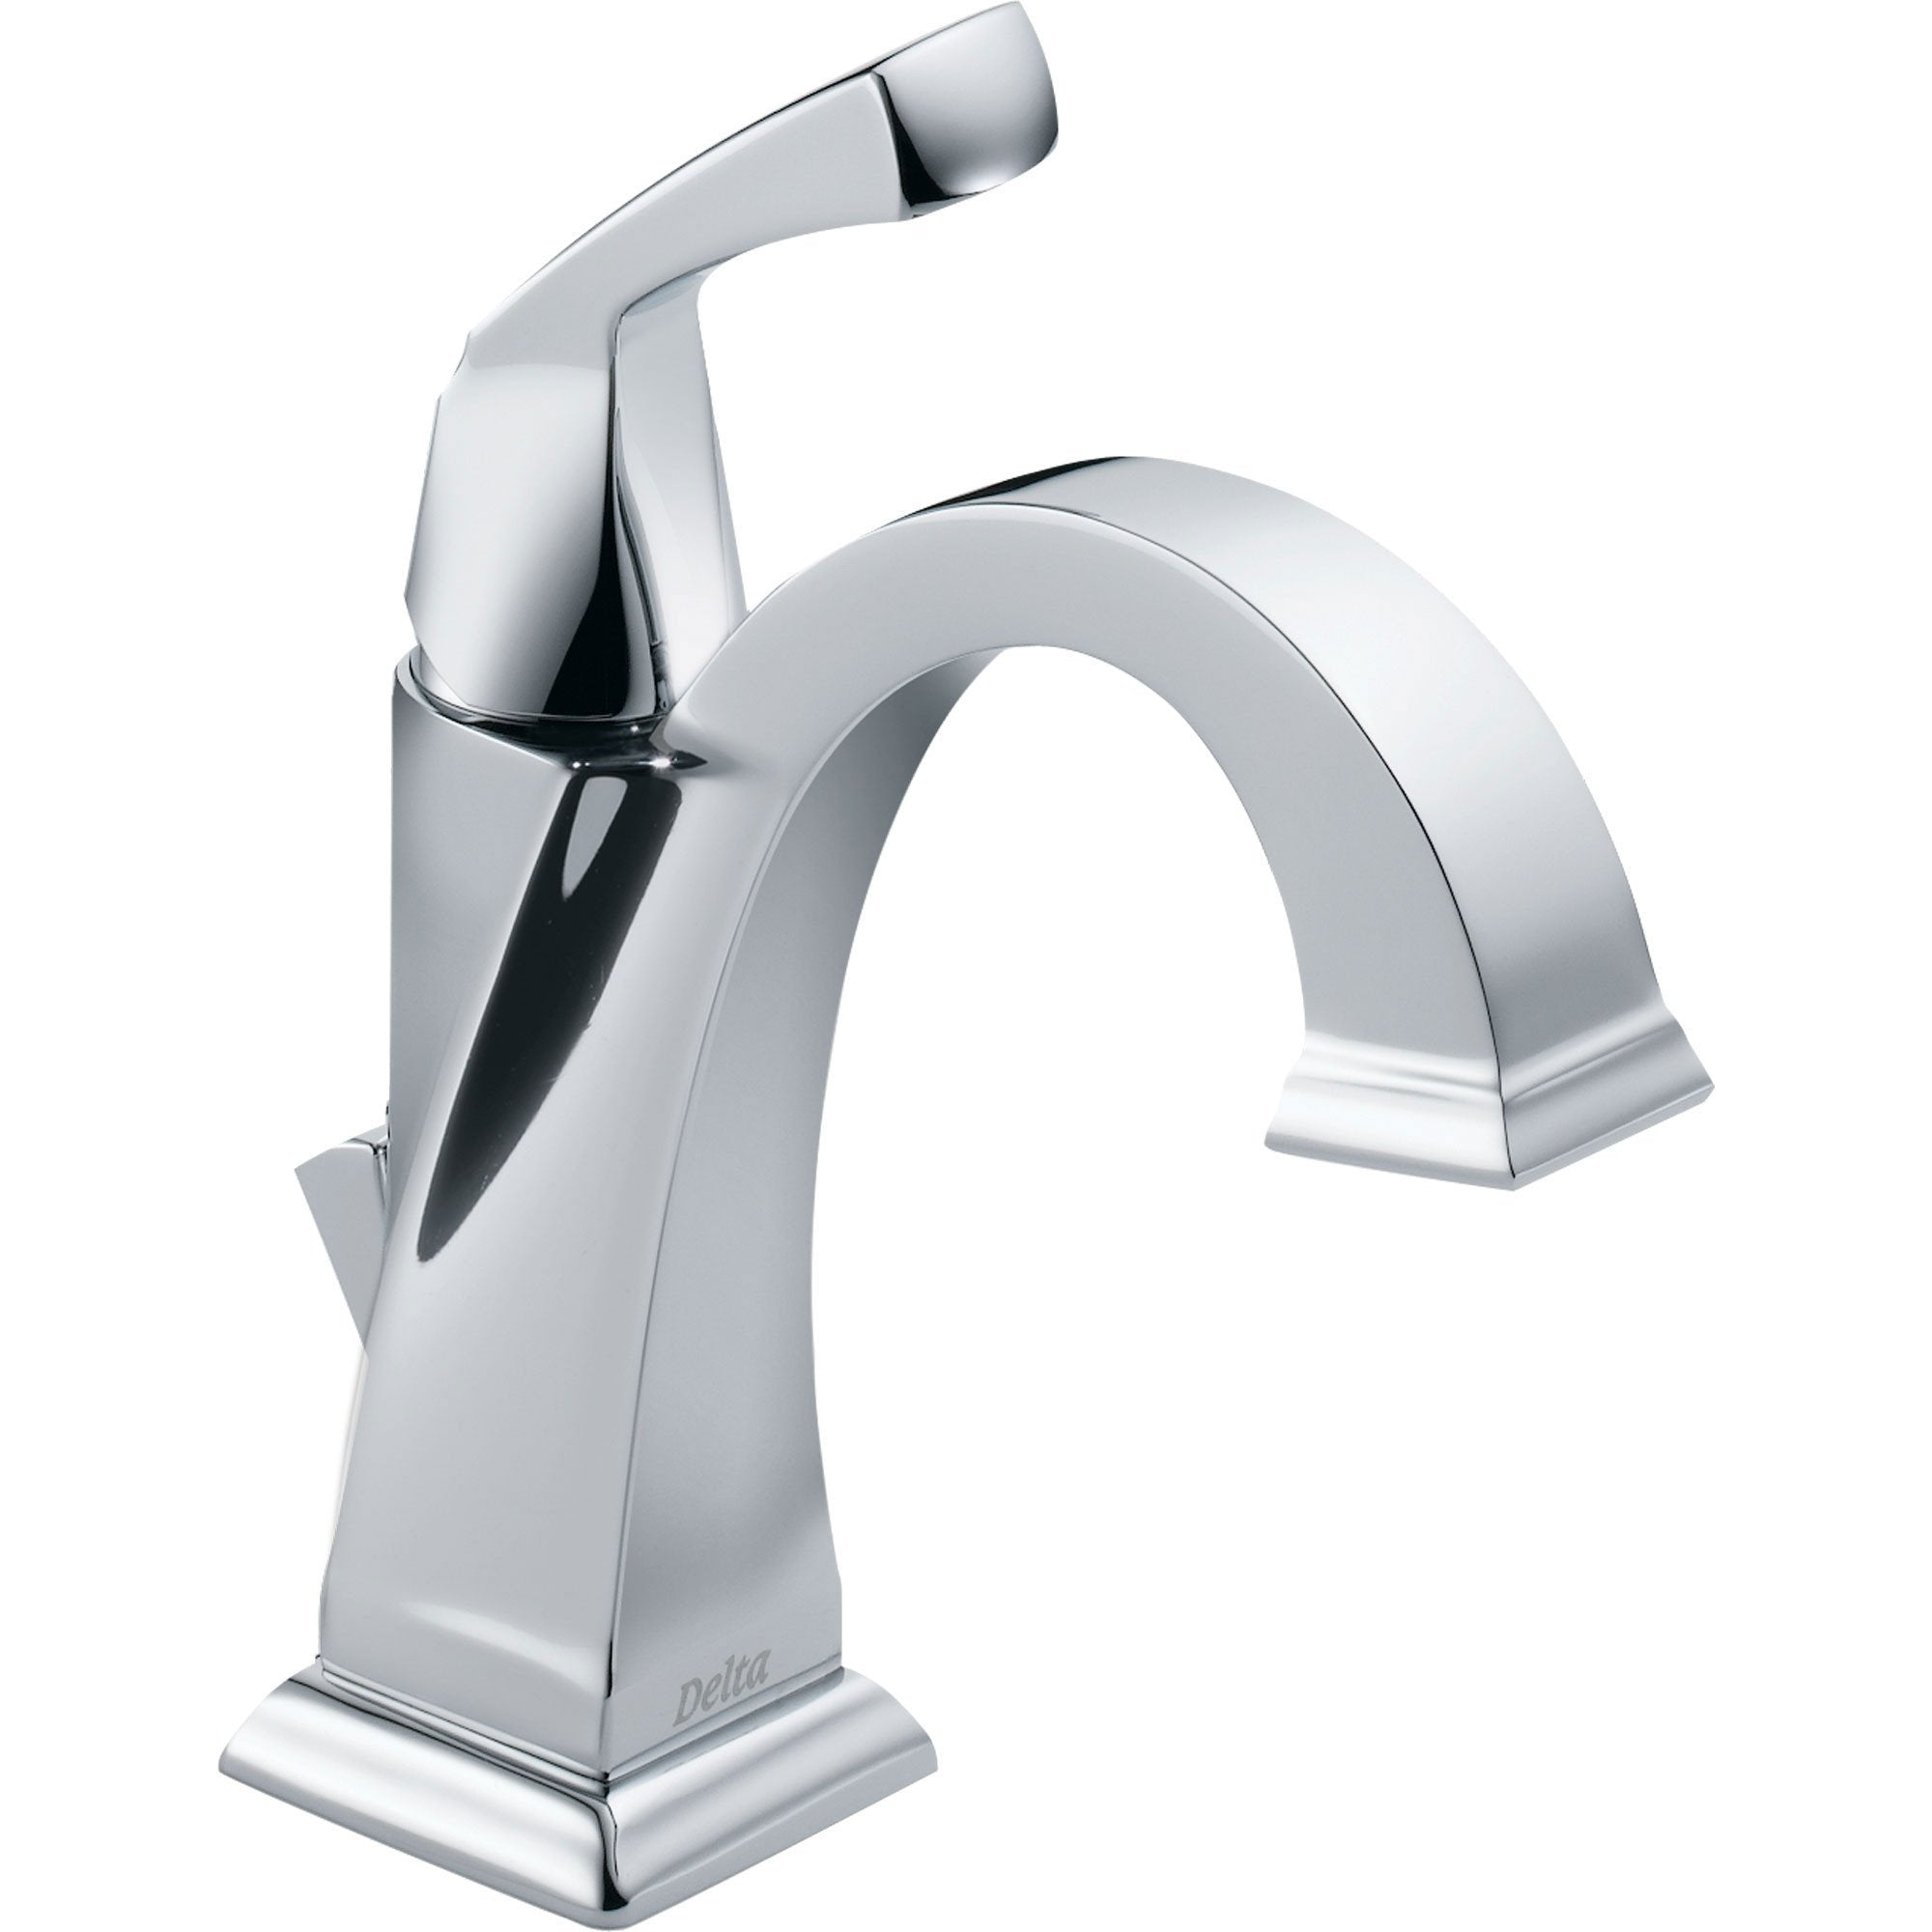 Delta Dryden Chrome Finish Single-Hole 1-Handle Modern Bathroom Faucet 495407